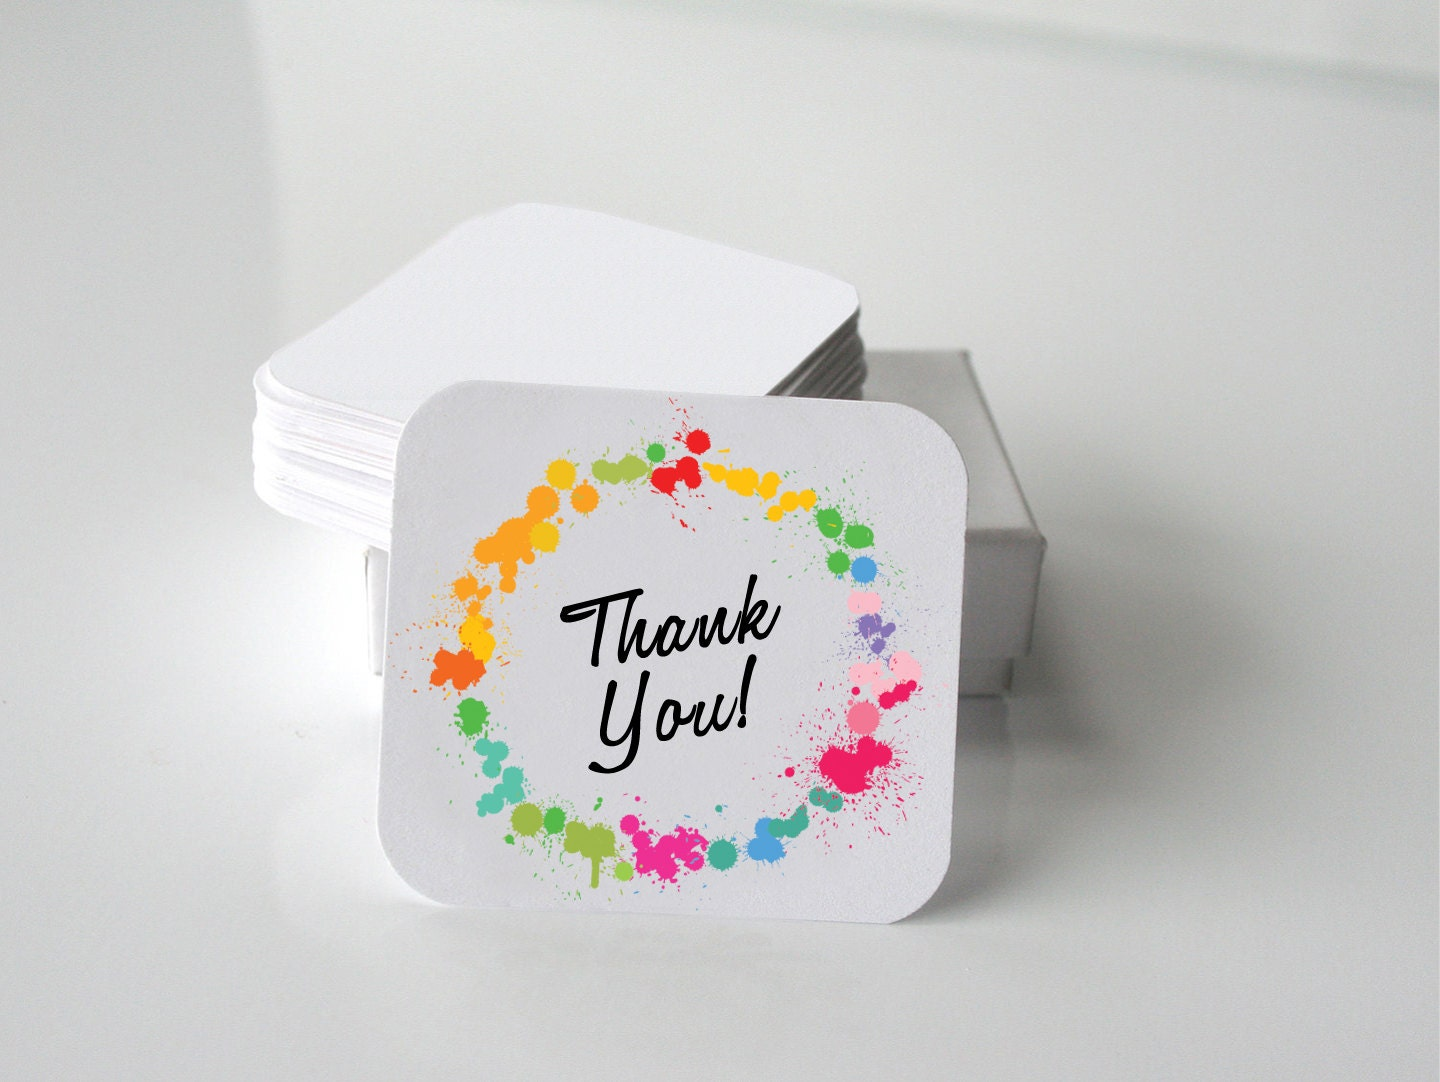 Make a stylish and heartfelt impact on your friends and family with personalized photo thank you cards from Tiny Prints. Our collection of thank you stationery offers a range of luxe designs perfect for any and every event, from birthday parties to baby showers to holiday events. Tips for Writing Thank You Cards. Wondering how to say thanks in a unique and genuine way? Here are some ideas and tips for writing .